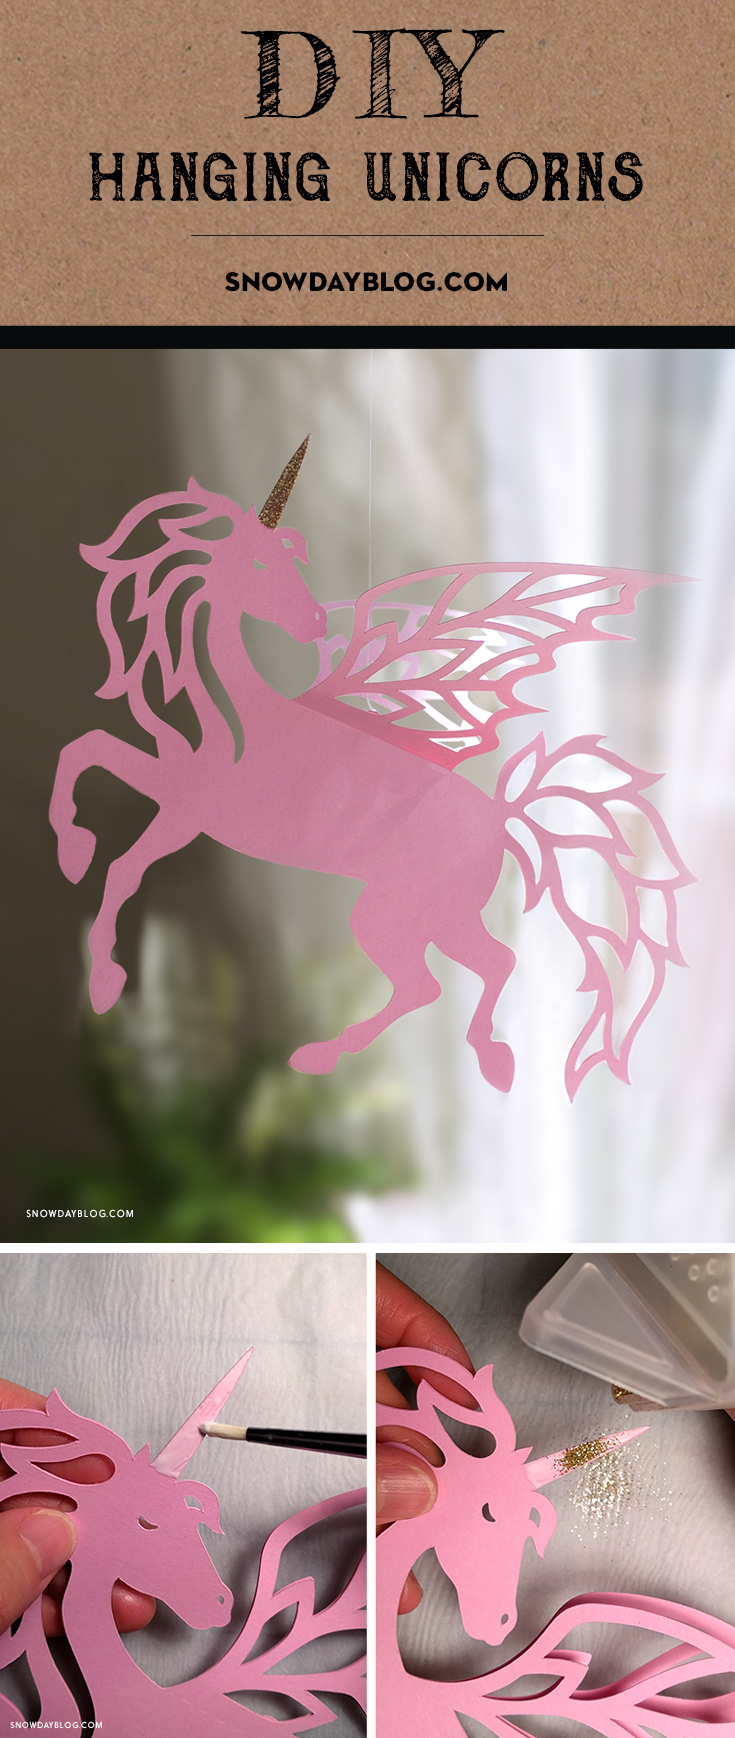 Hanging Unicorns Pinterest Pink